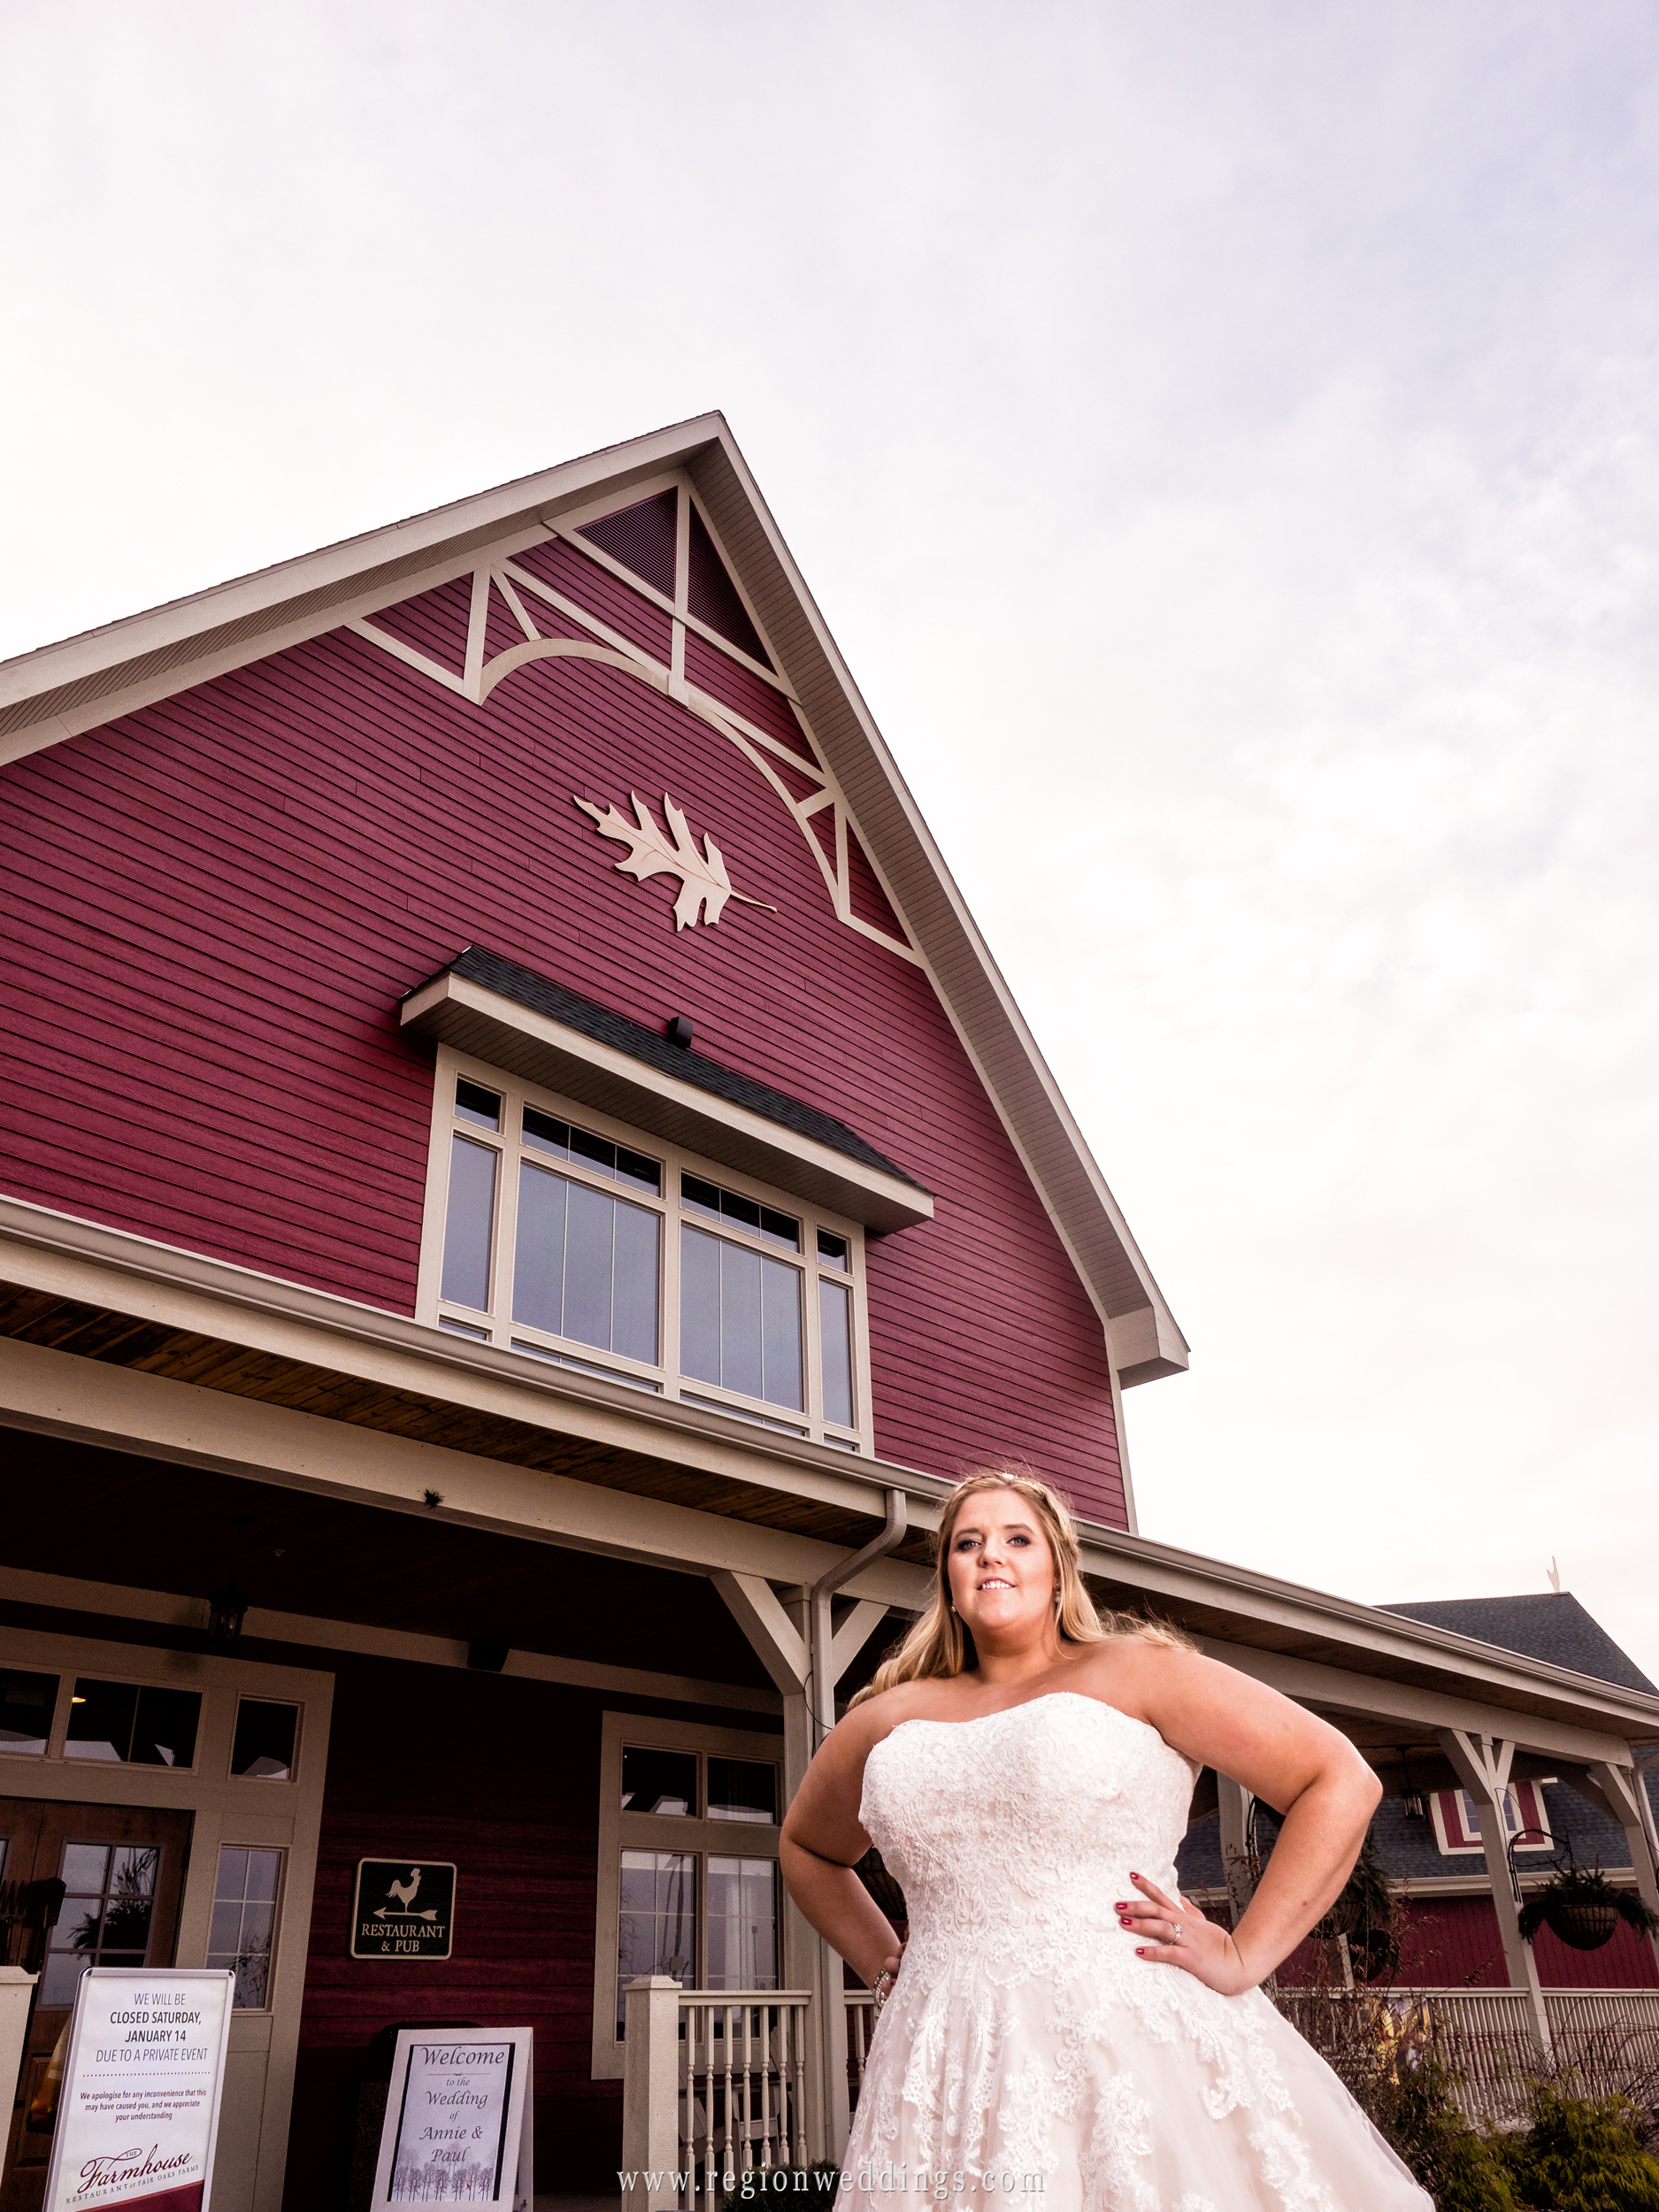 The bride in front of Fair Oaks Farmhouse at her winter wedding.